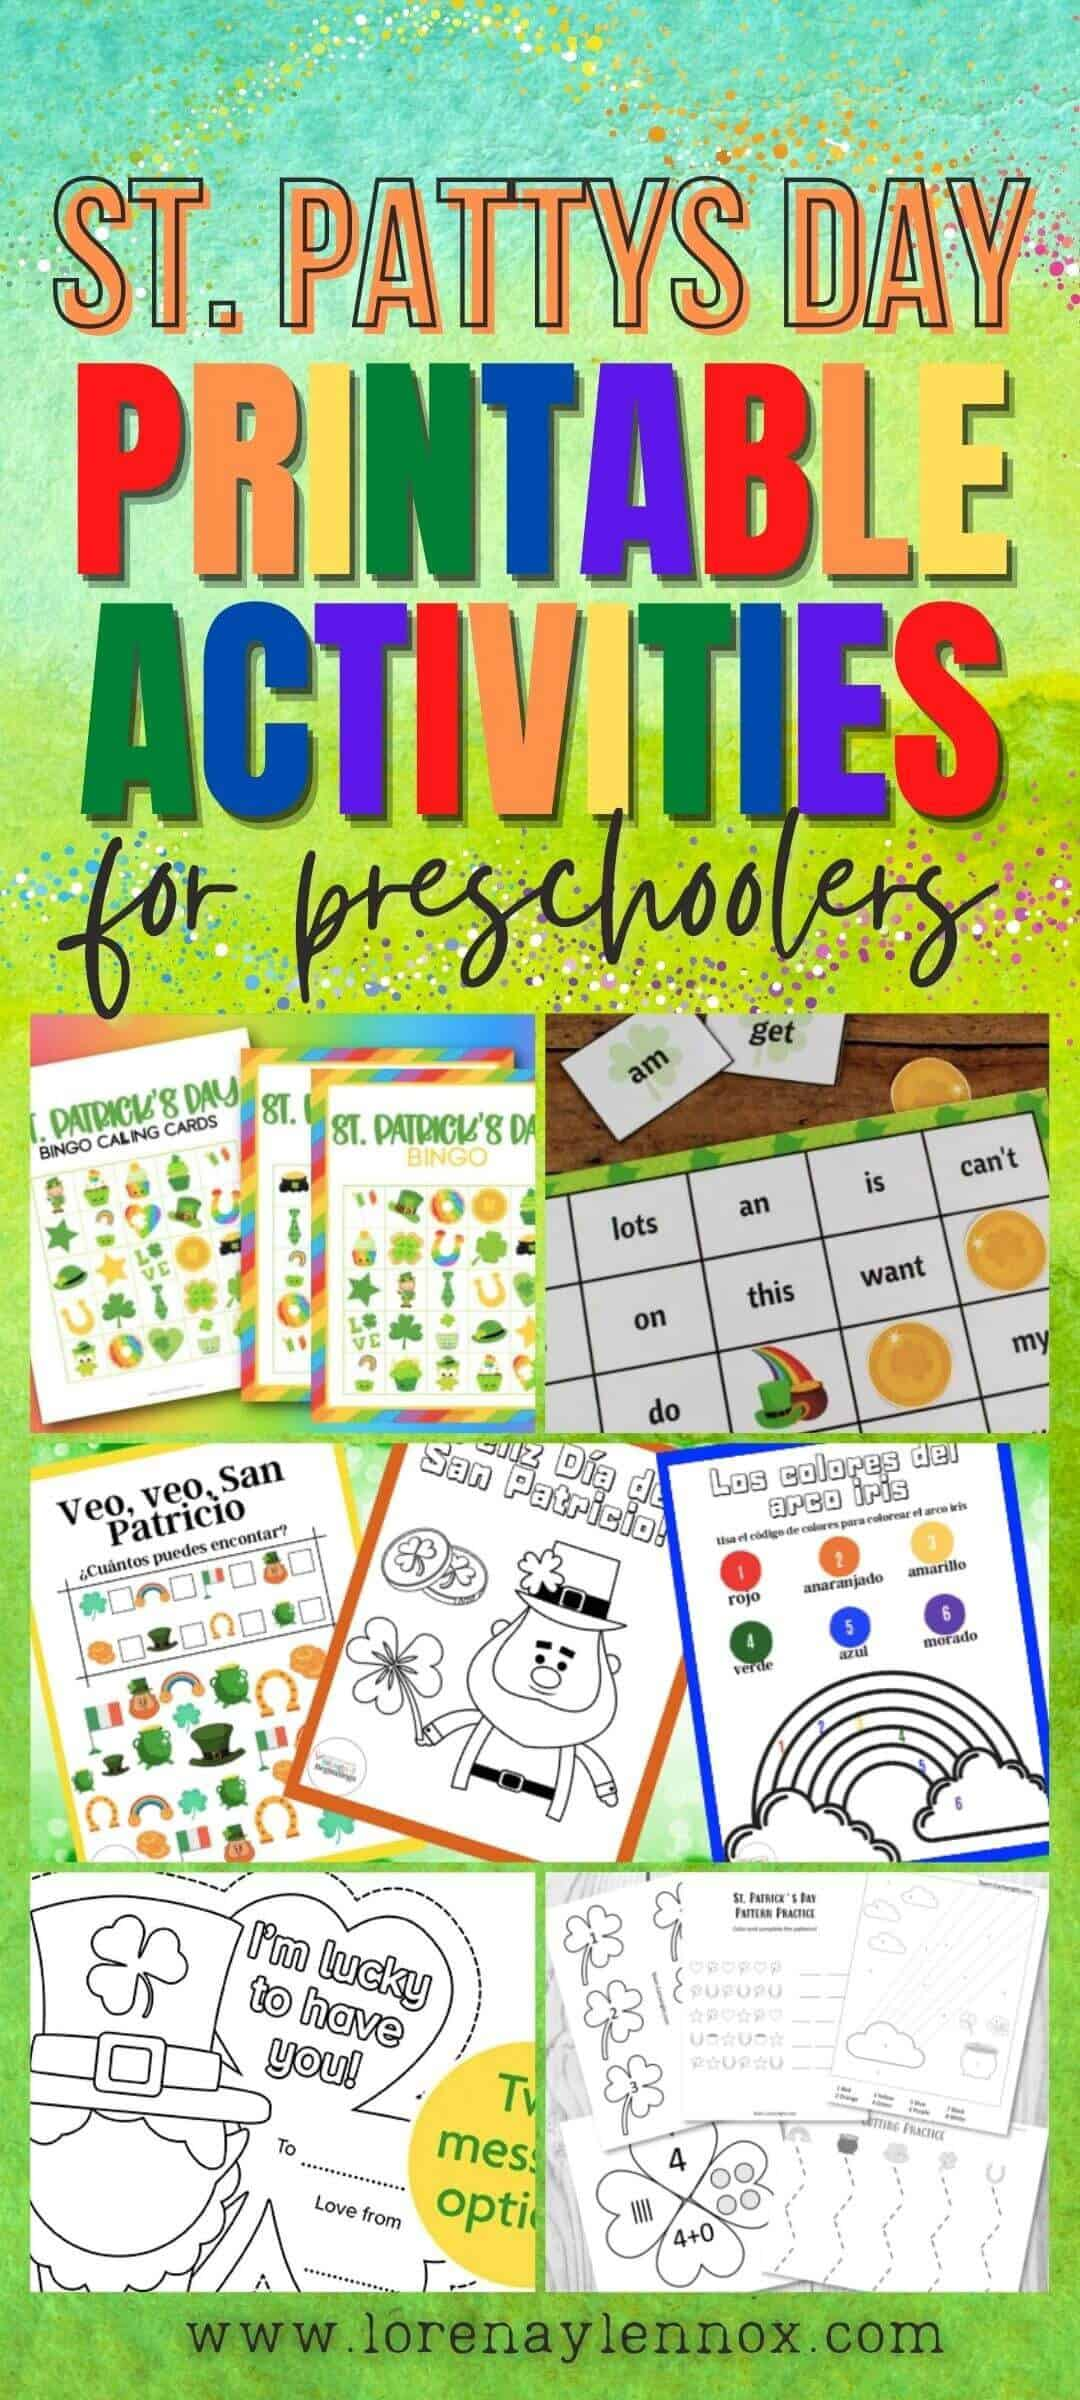 Inside: 25 St. Patrick's Day printable activity worksheets for toddlers and preschoolers ages 2 through 5. These printable activities perfect for the classroom or the homeschooling parent.